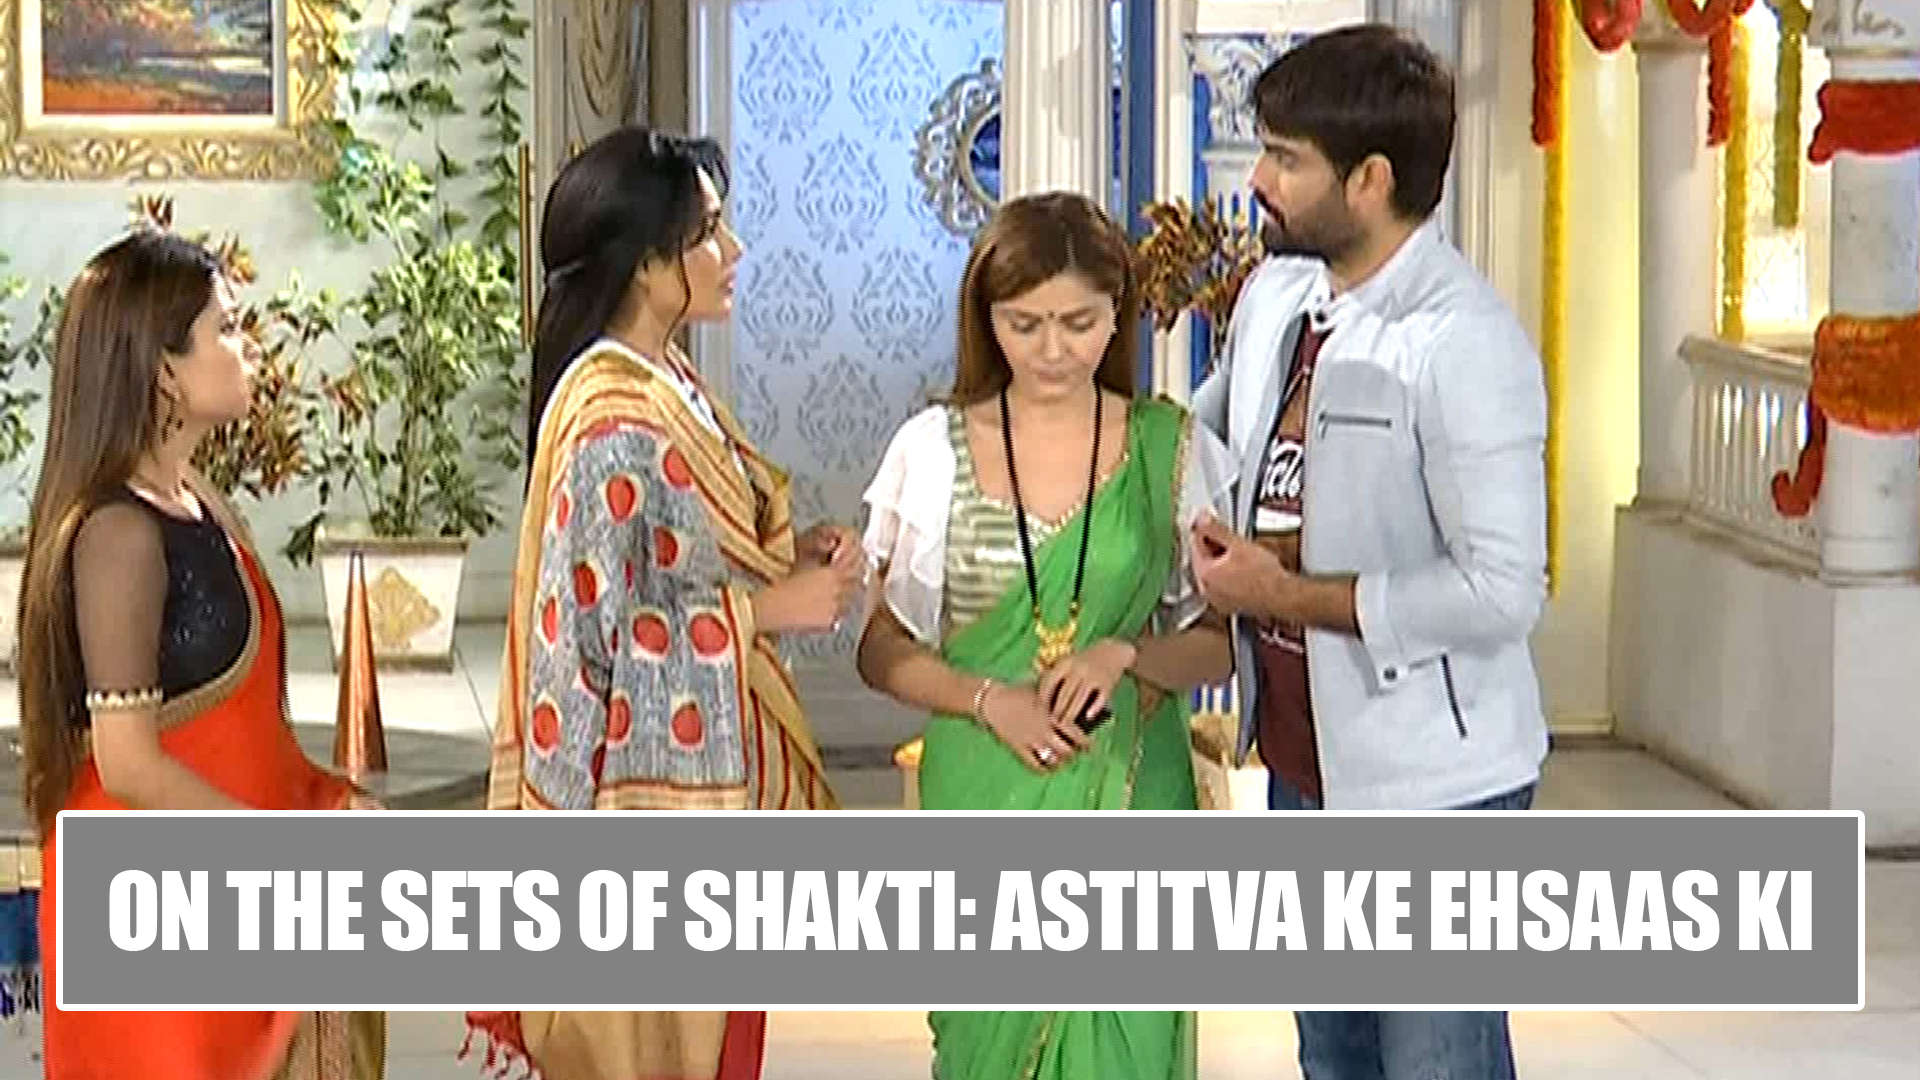 On the sets of Shakti: Astitva Ke Ehsaas Ki